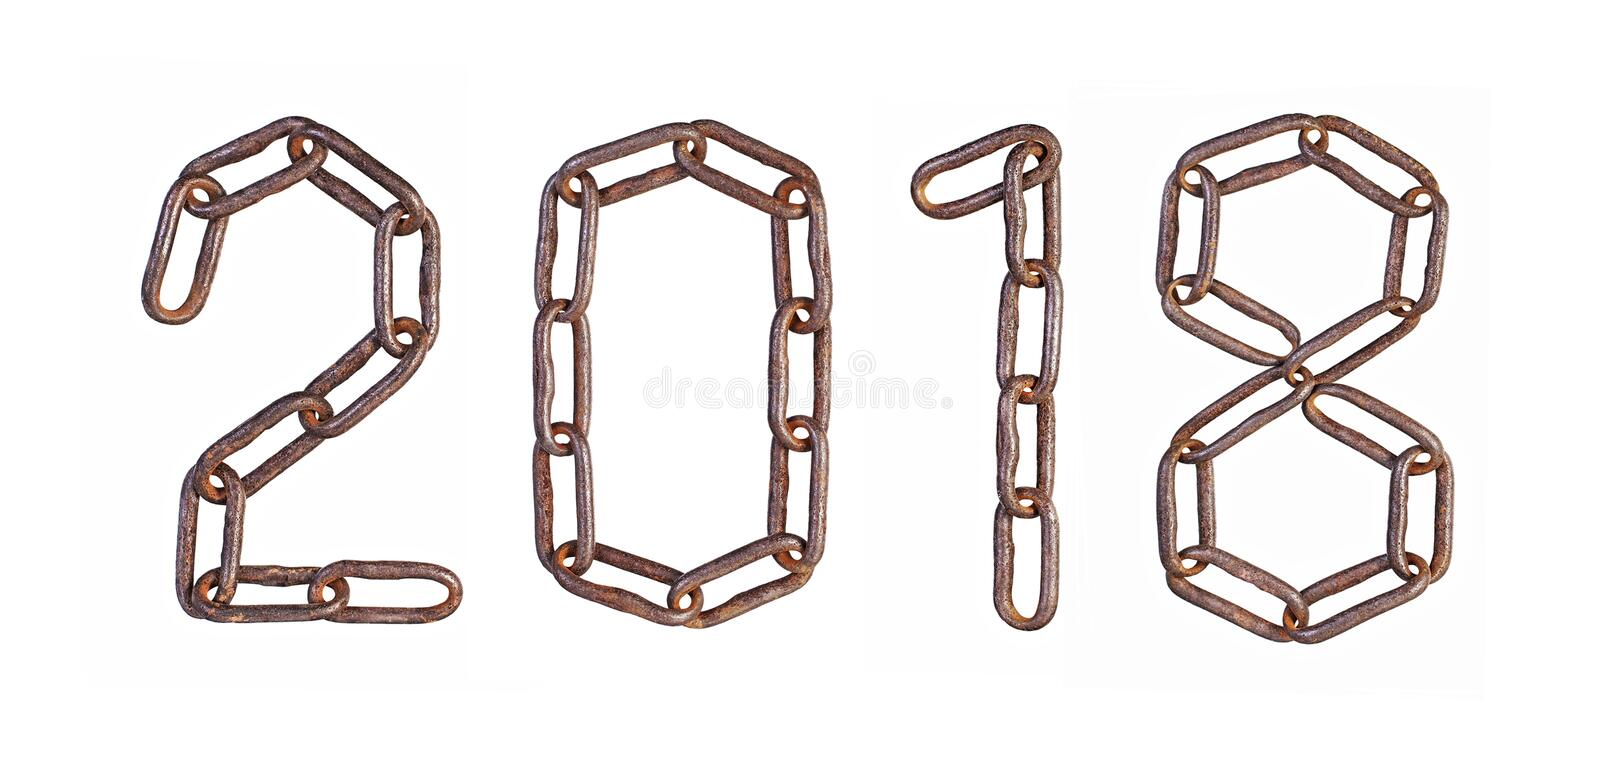 2018. Figures from chain links. New year royalty free stock images